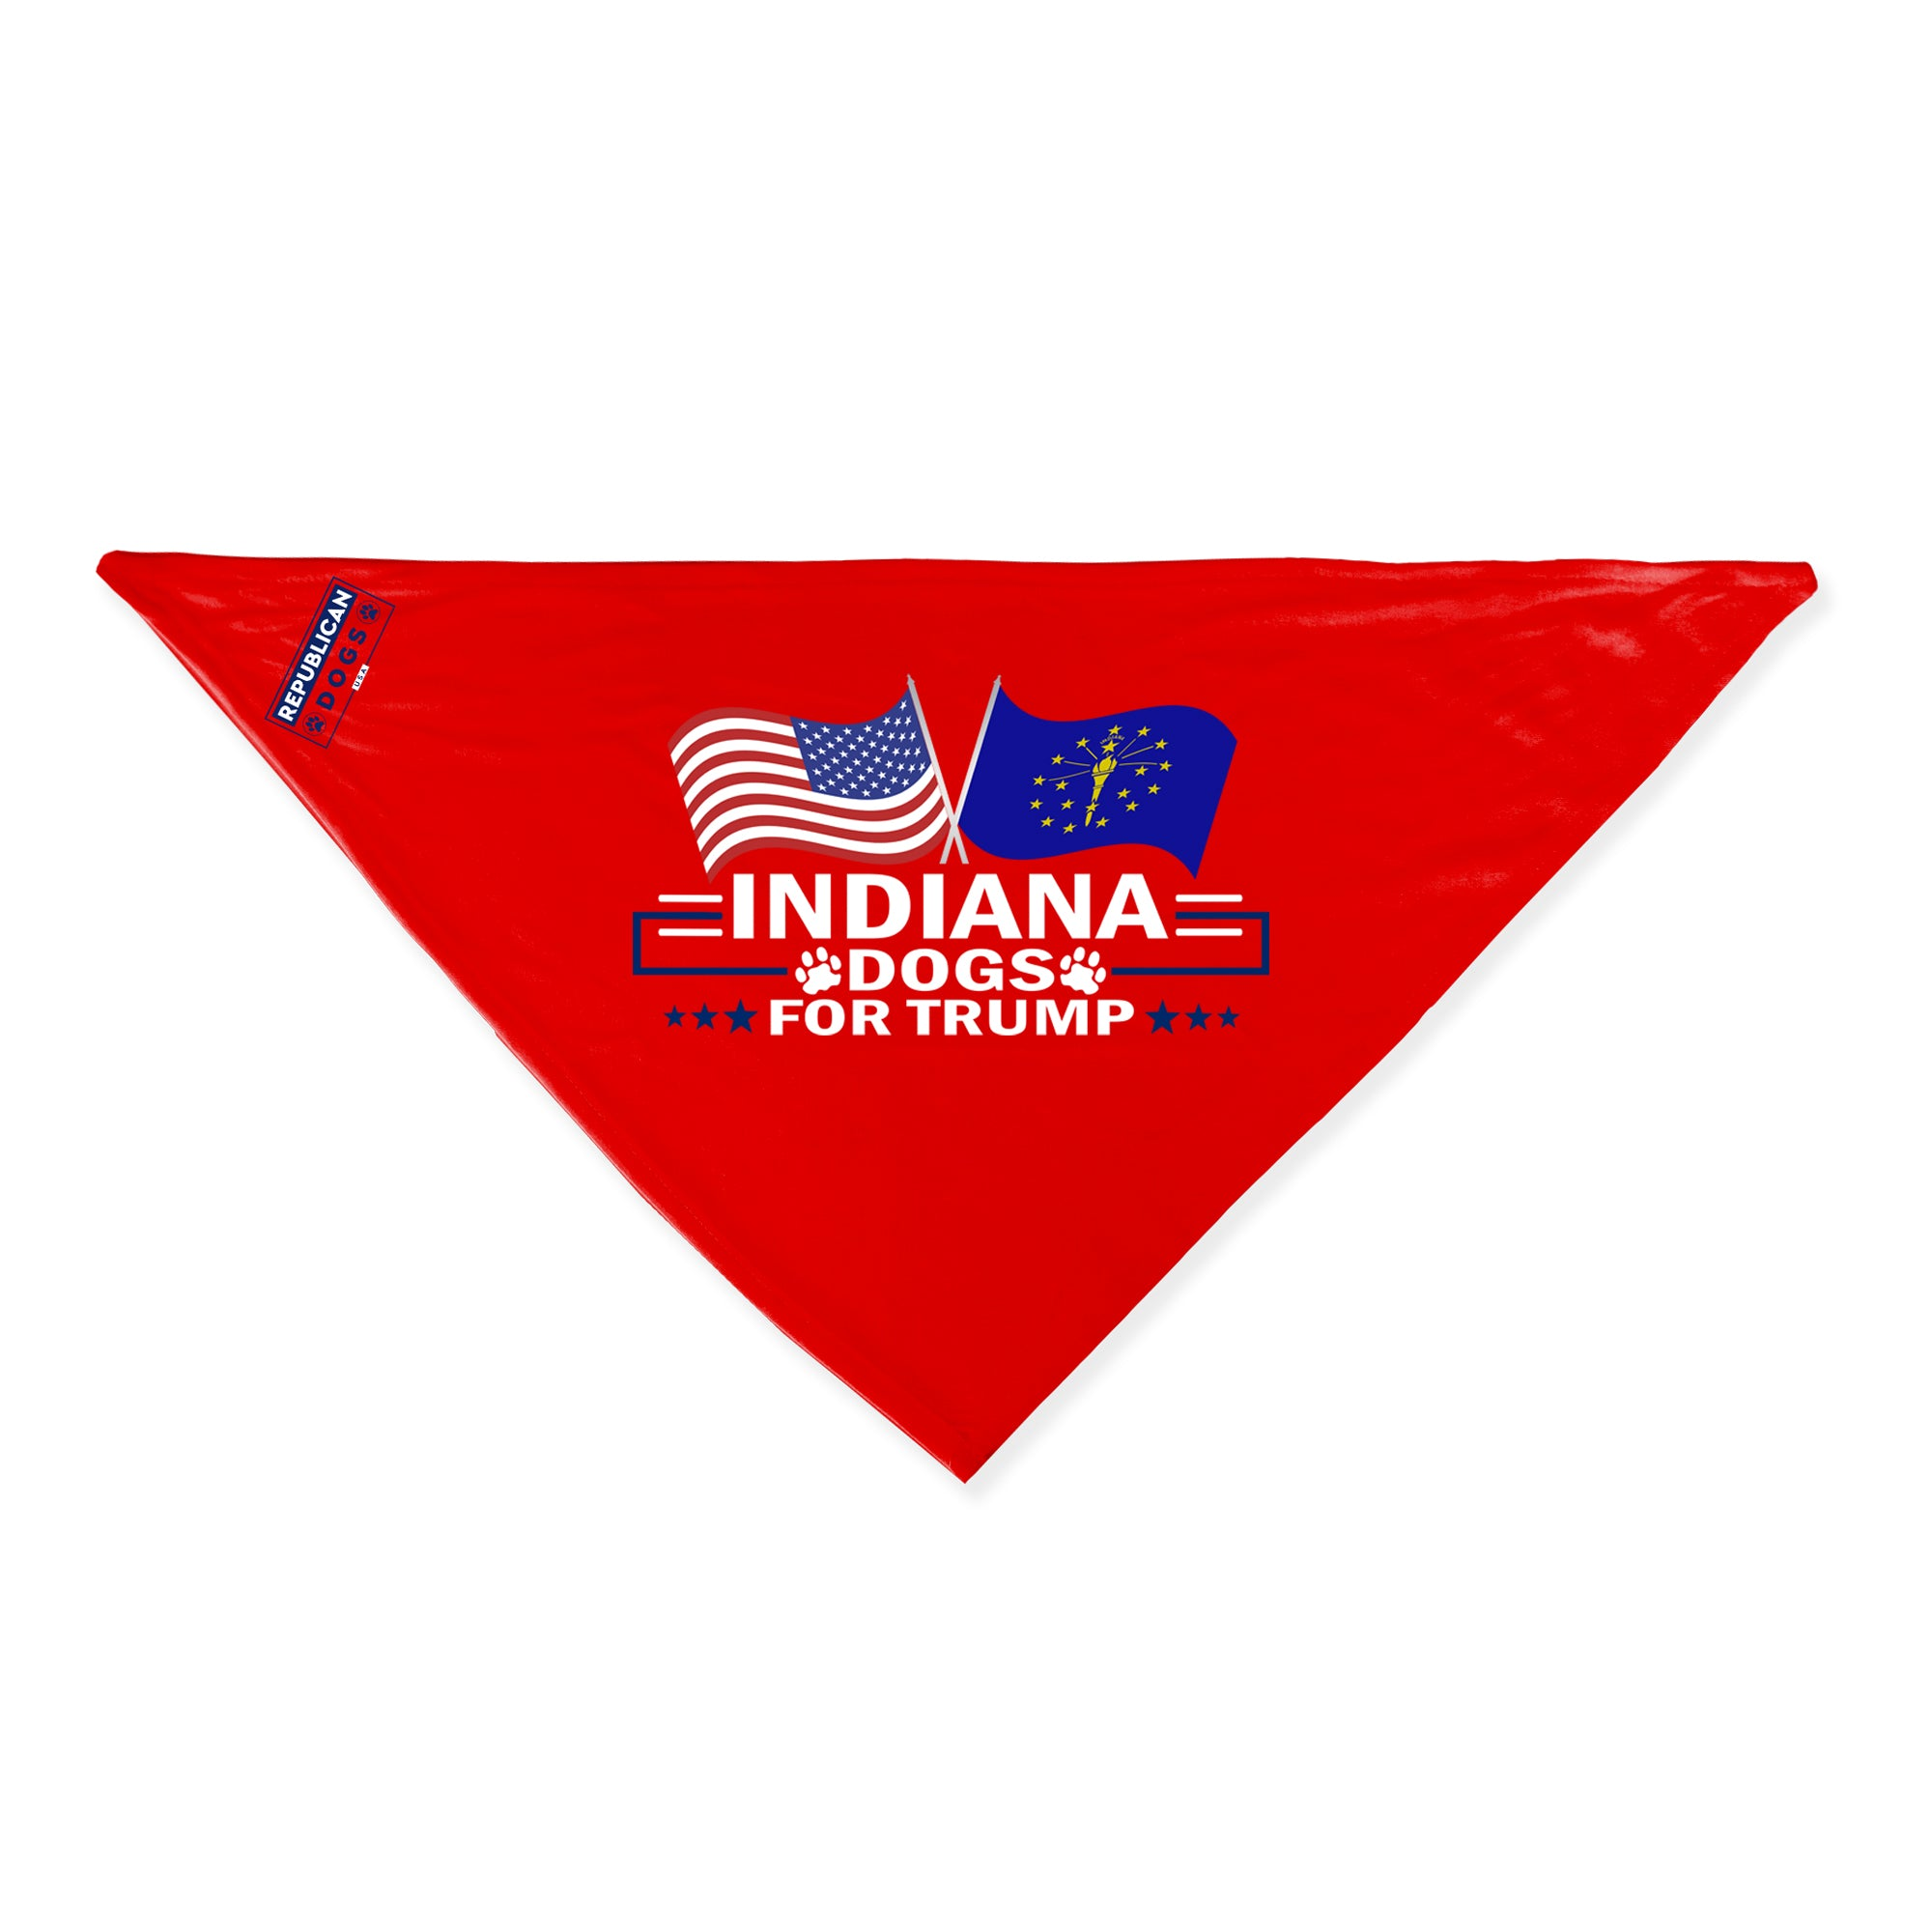 Indiana For Trump Dog Bandana Limited Edition